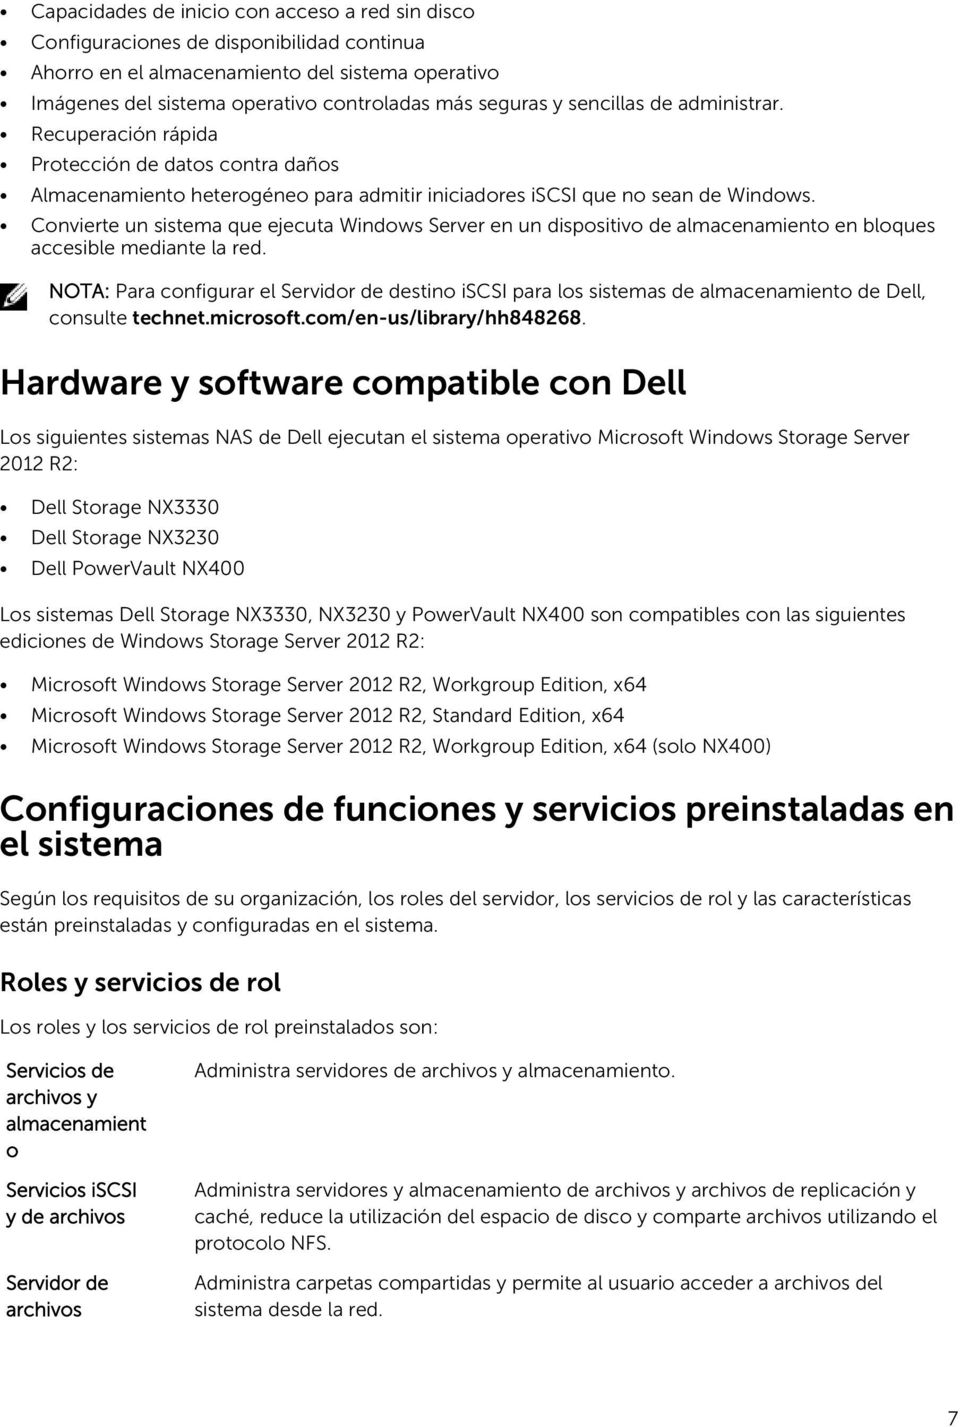 Convierte un sistema que ejecuta Windows Server en un dispositivo de almacenamiento en bloques accesible mediante la red.